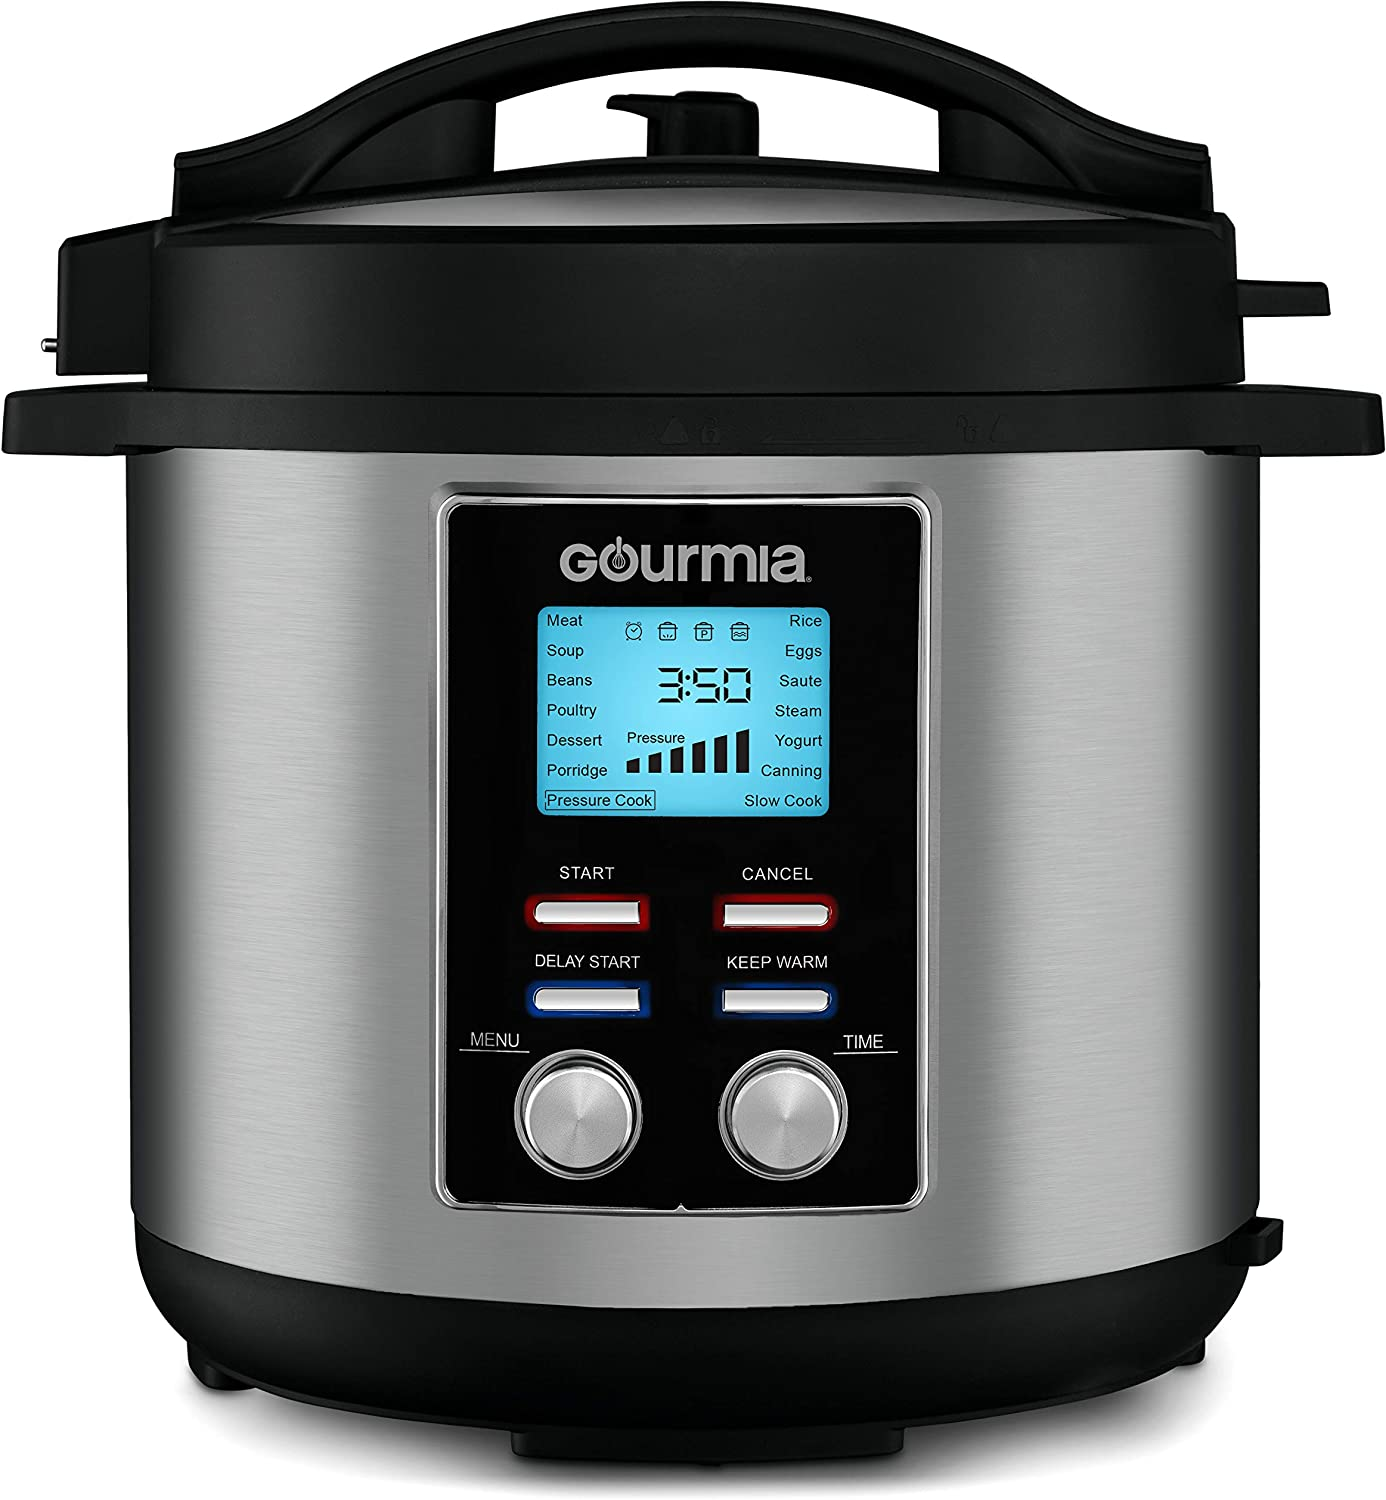 Gourmia Multi-Function Pressure Cooker